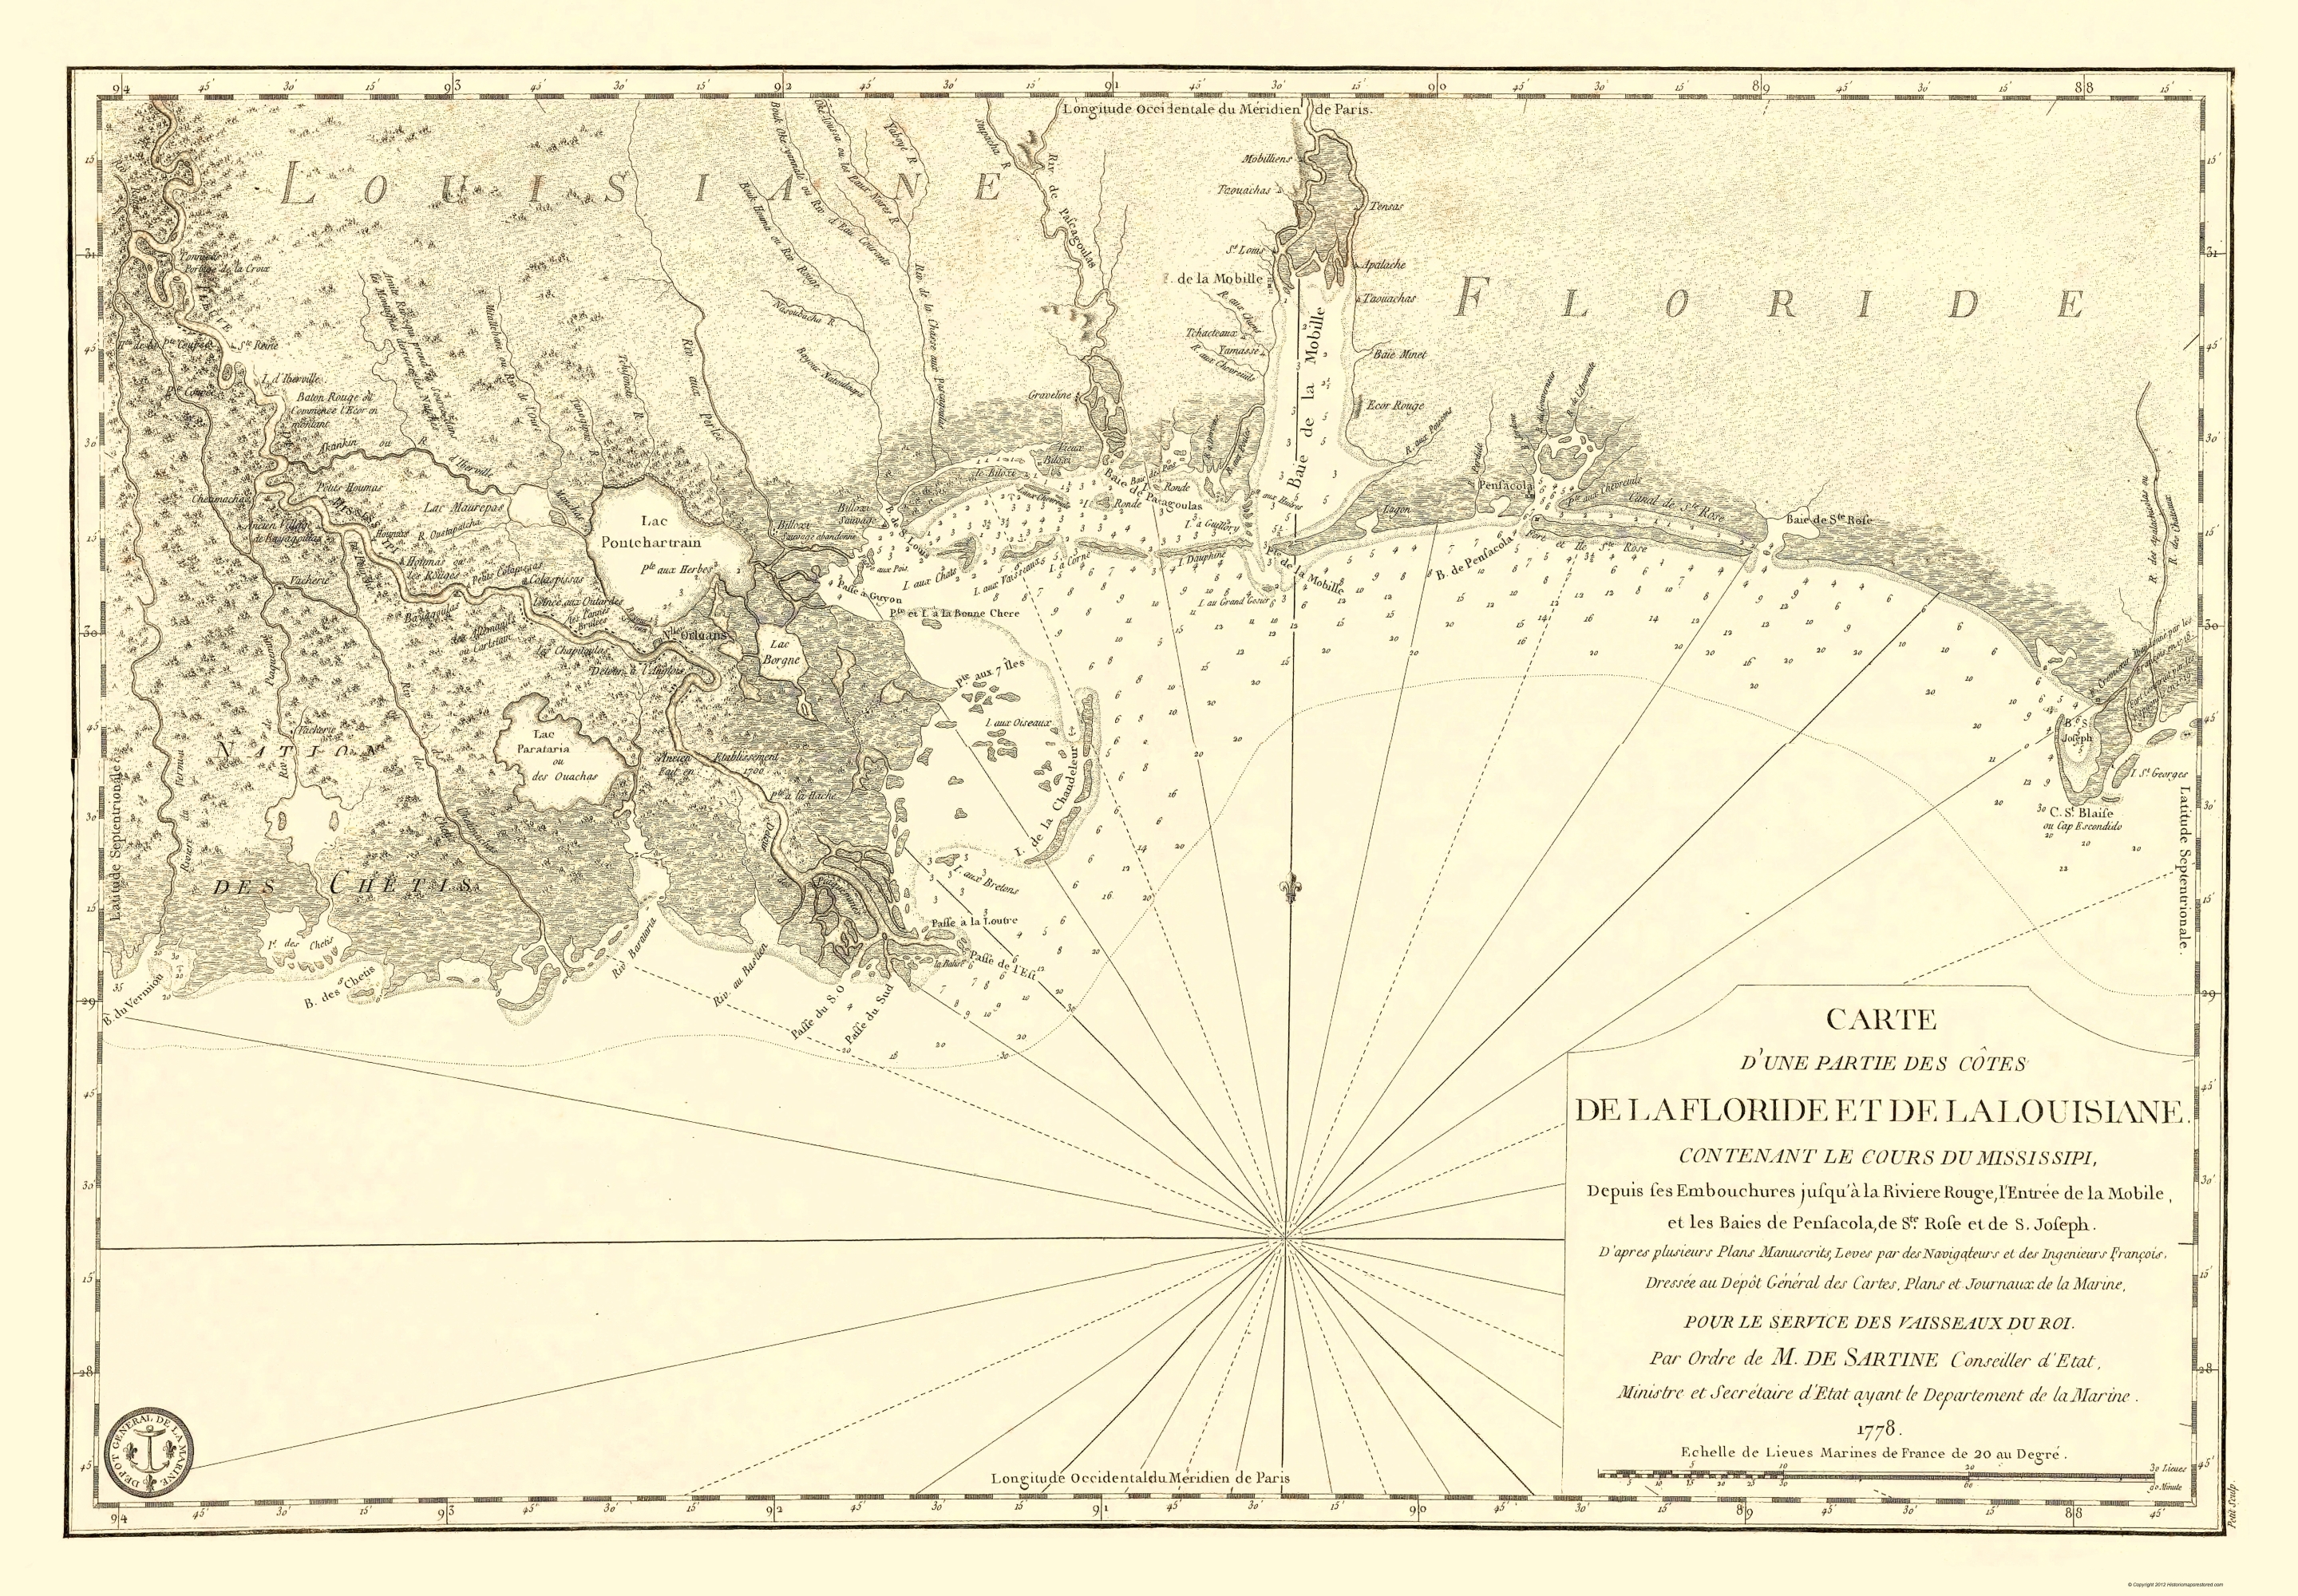 Old Travel Map - Florida and Louisiana Gulf Coast 1778